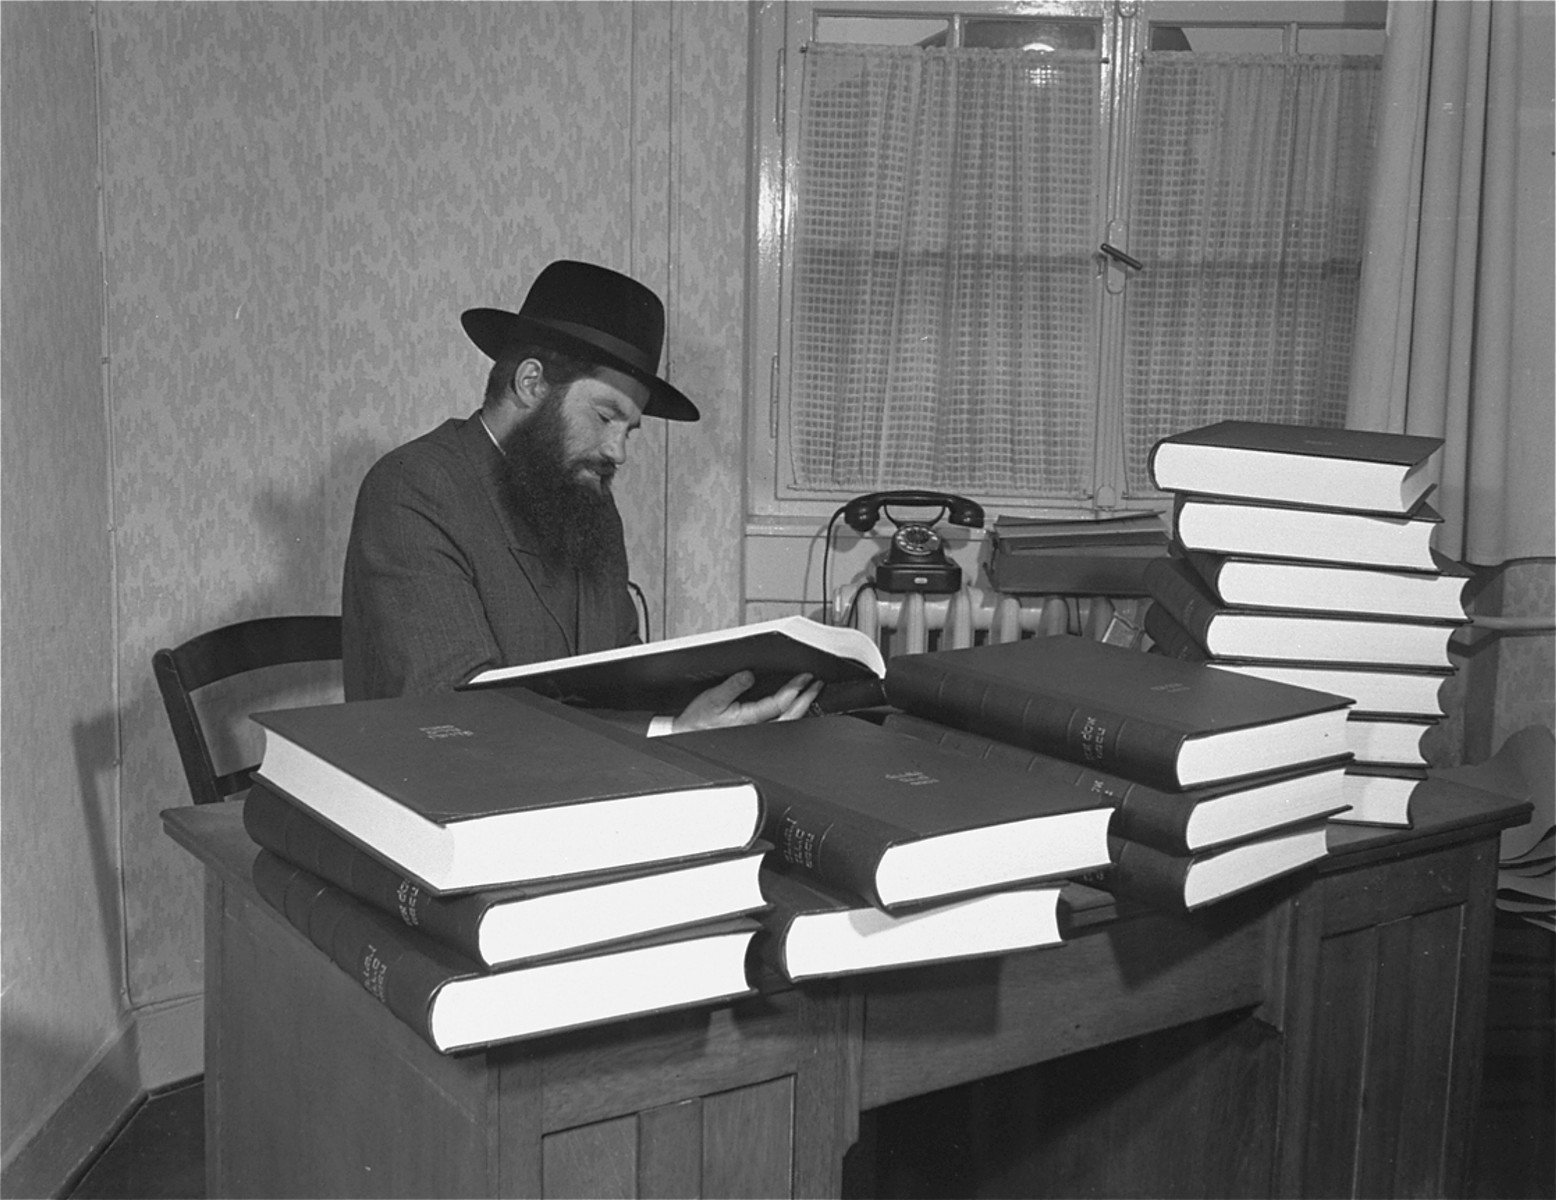 Rabbi Samuel Jakob Rose, Rabbi of the American zone of occupation in Germany, and a survivor of Dachau, examines one of the newly printed volumes of the Talmud.    This is the first edition of the Talmud to be printed in Germany since Kristallnacht.